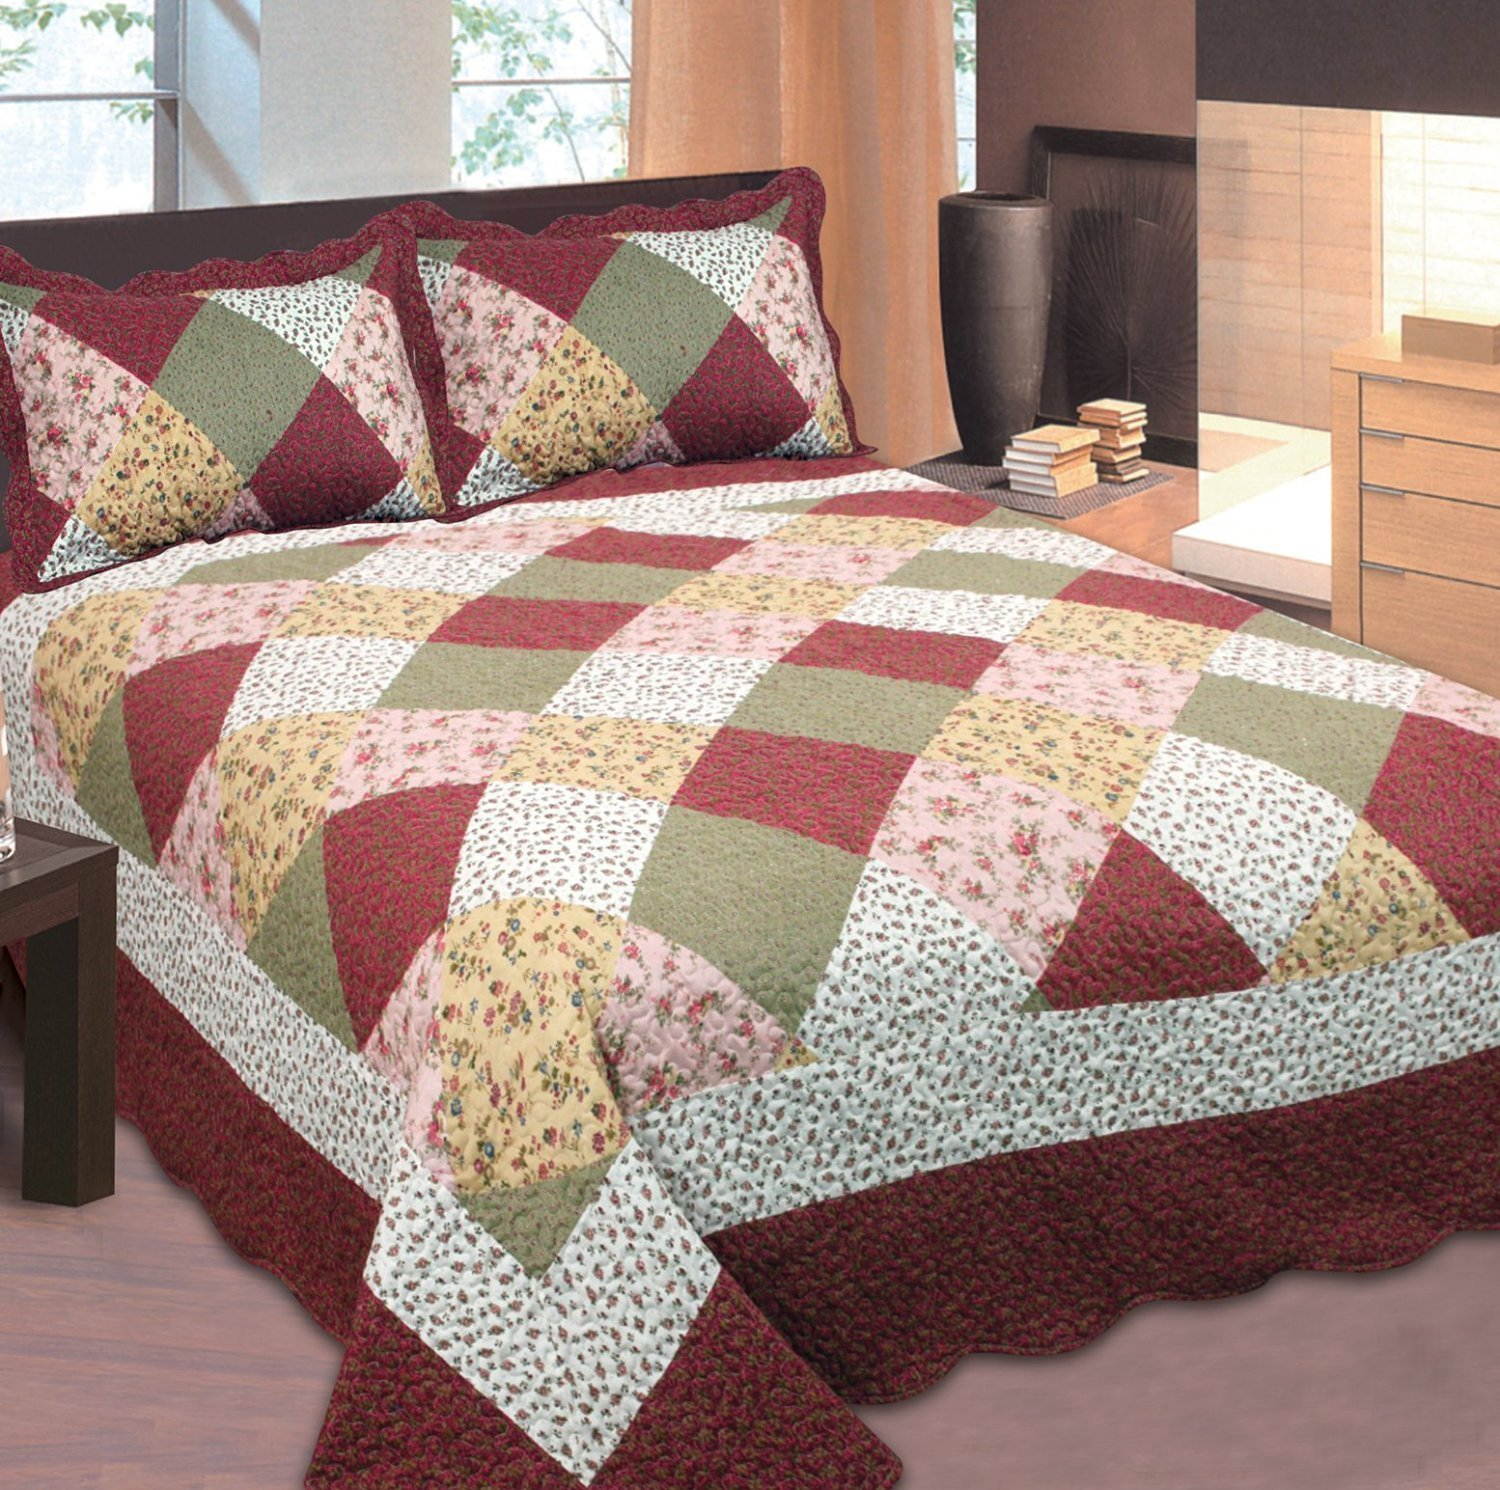 Fancy Collection 2pc Twin Size Quilted Bedspread Coverlet Set Patchwork Floral Burgundy Off White Pink Beige New